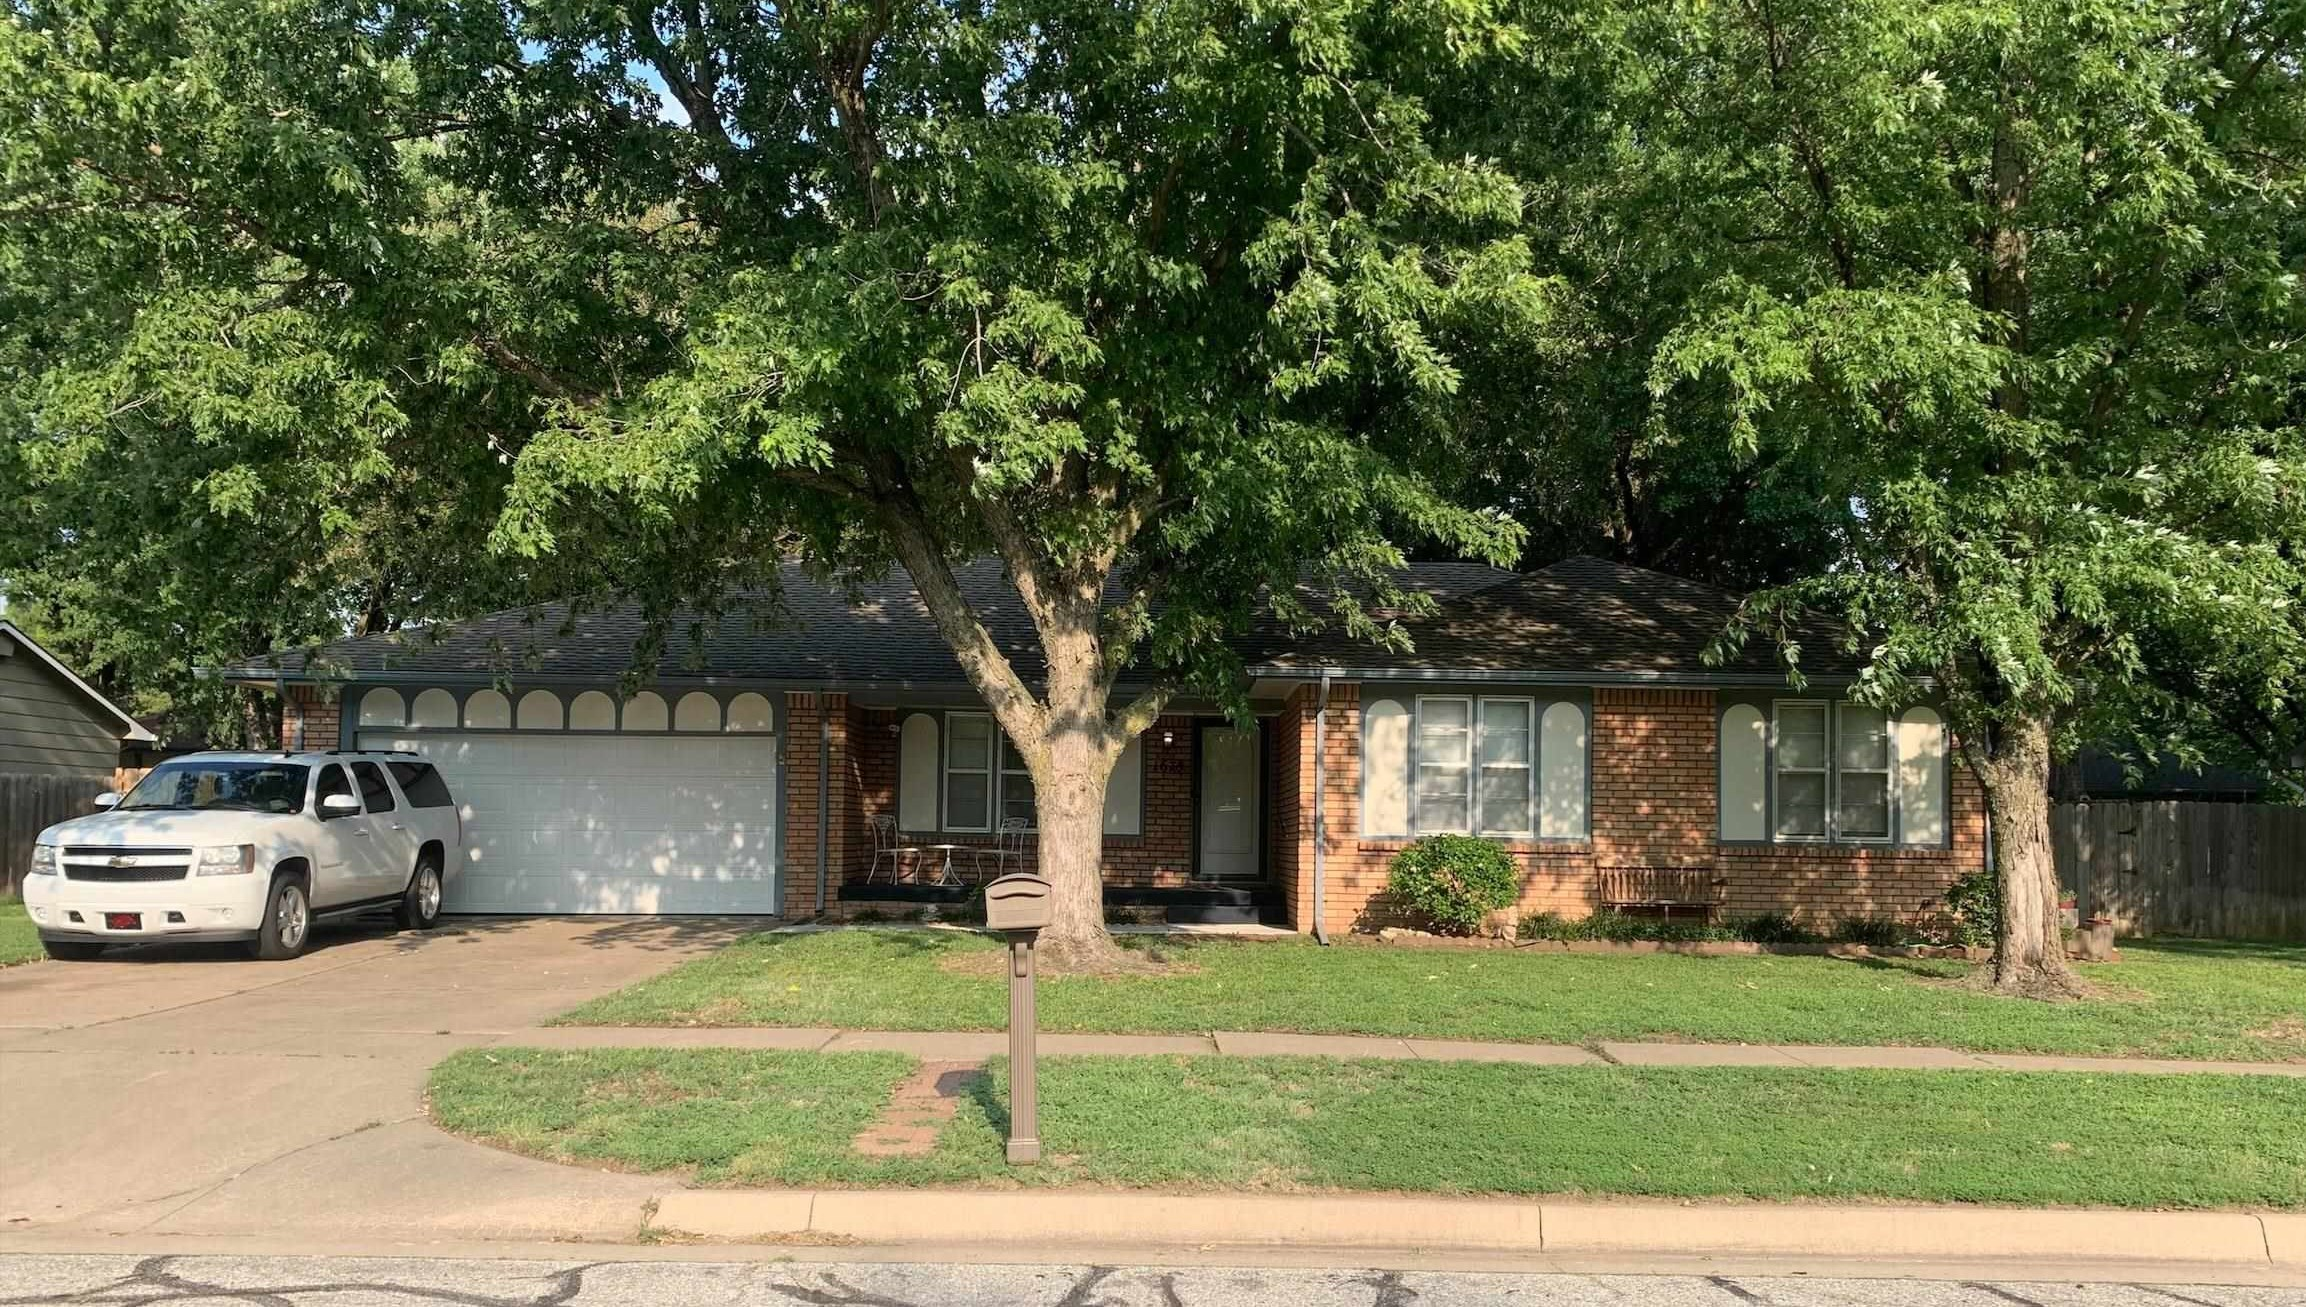 Welcome home!! Here is your opportunity to own a very nice, updated west side home. The interior has